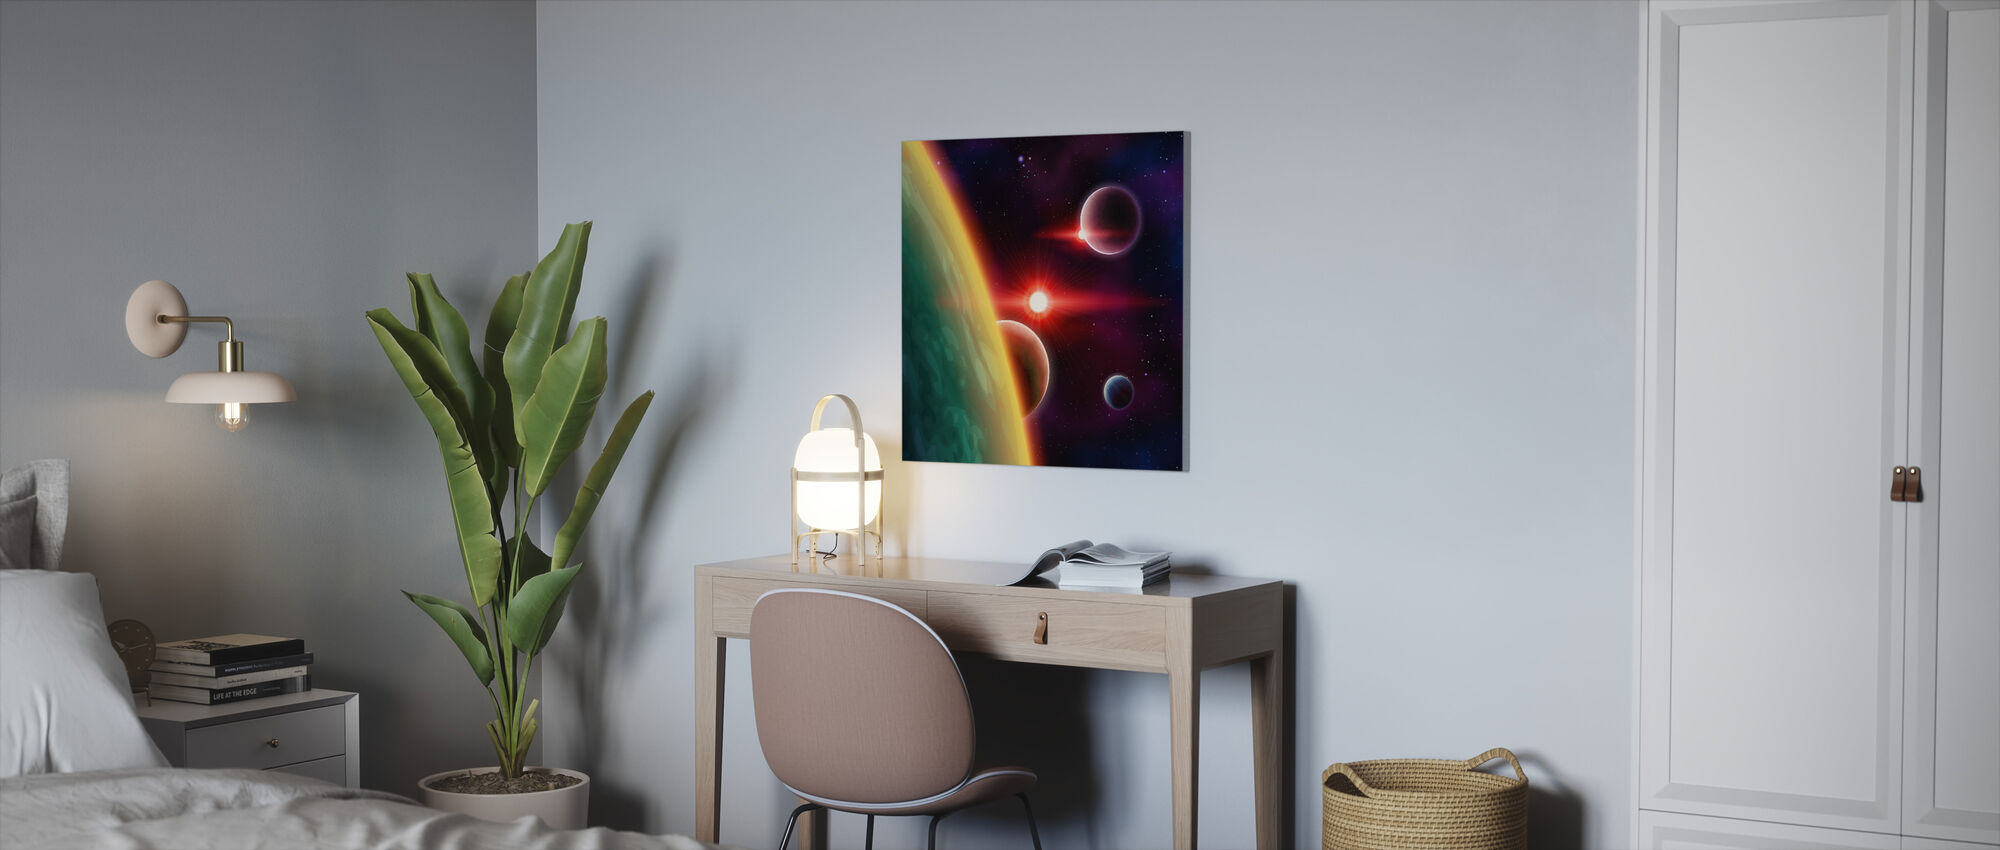 Spaces between Galaxies - Canvas print - Office